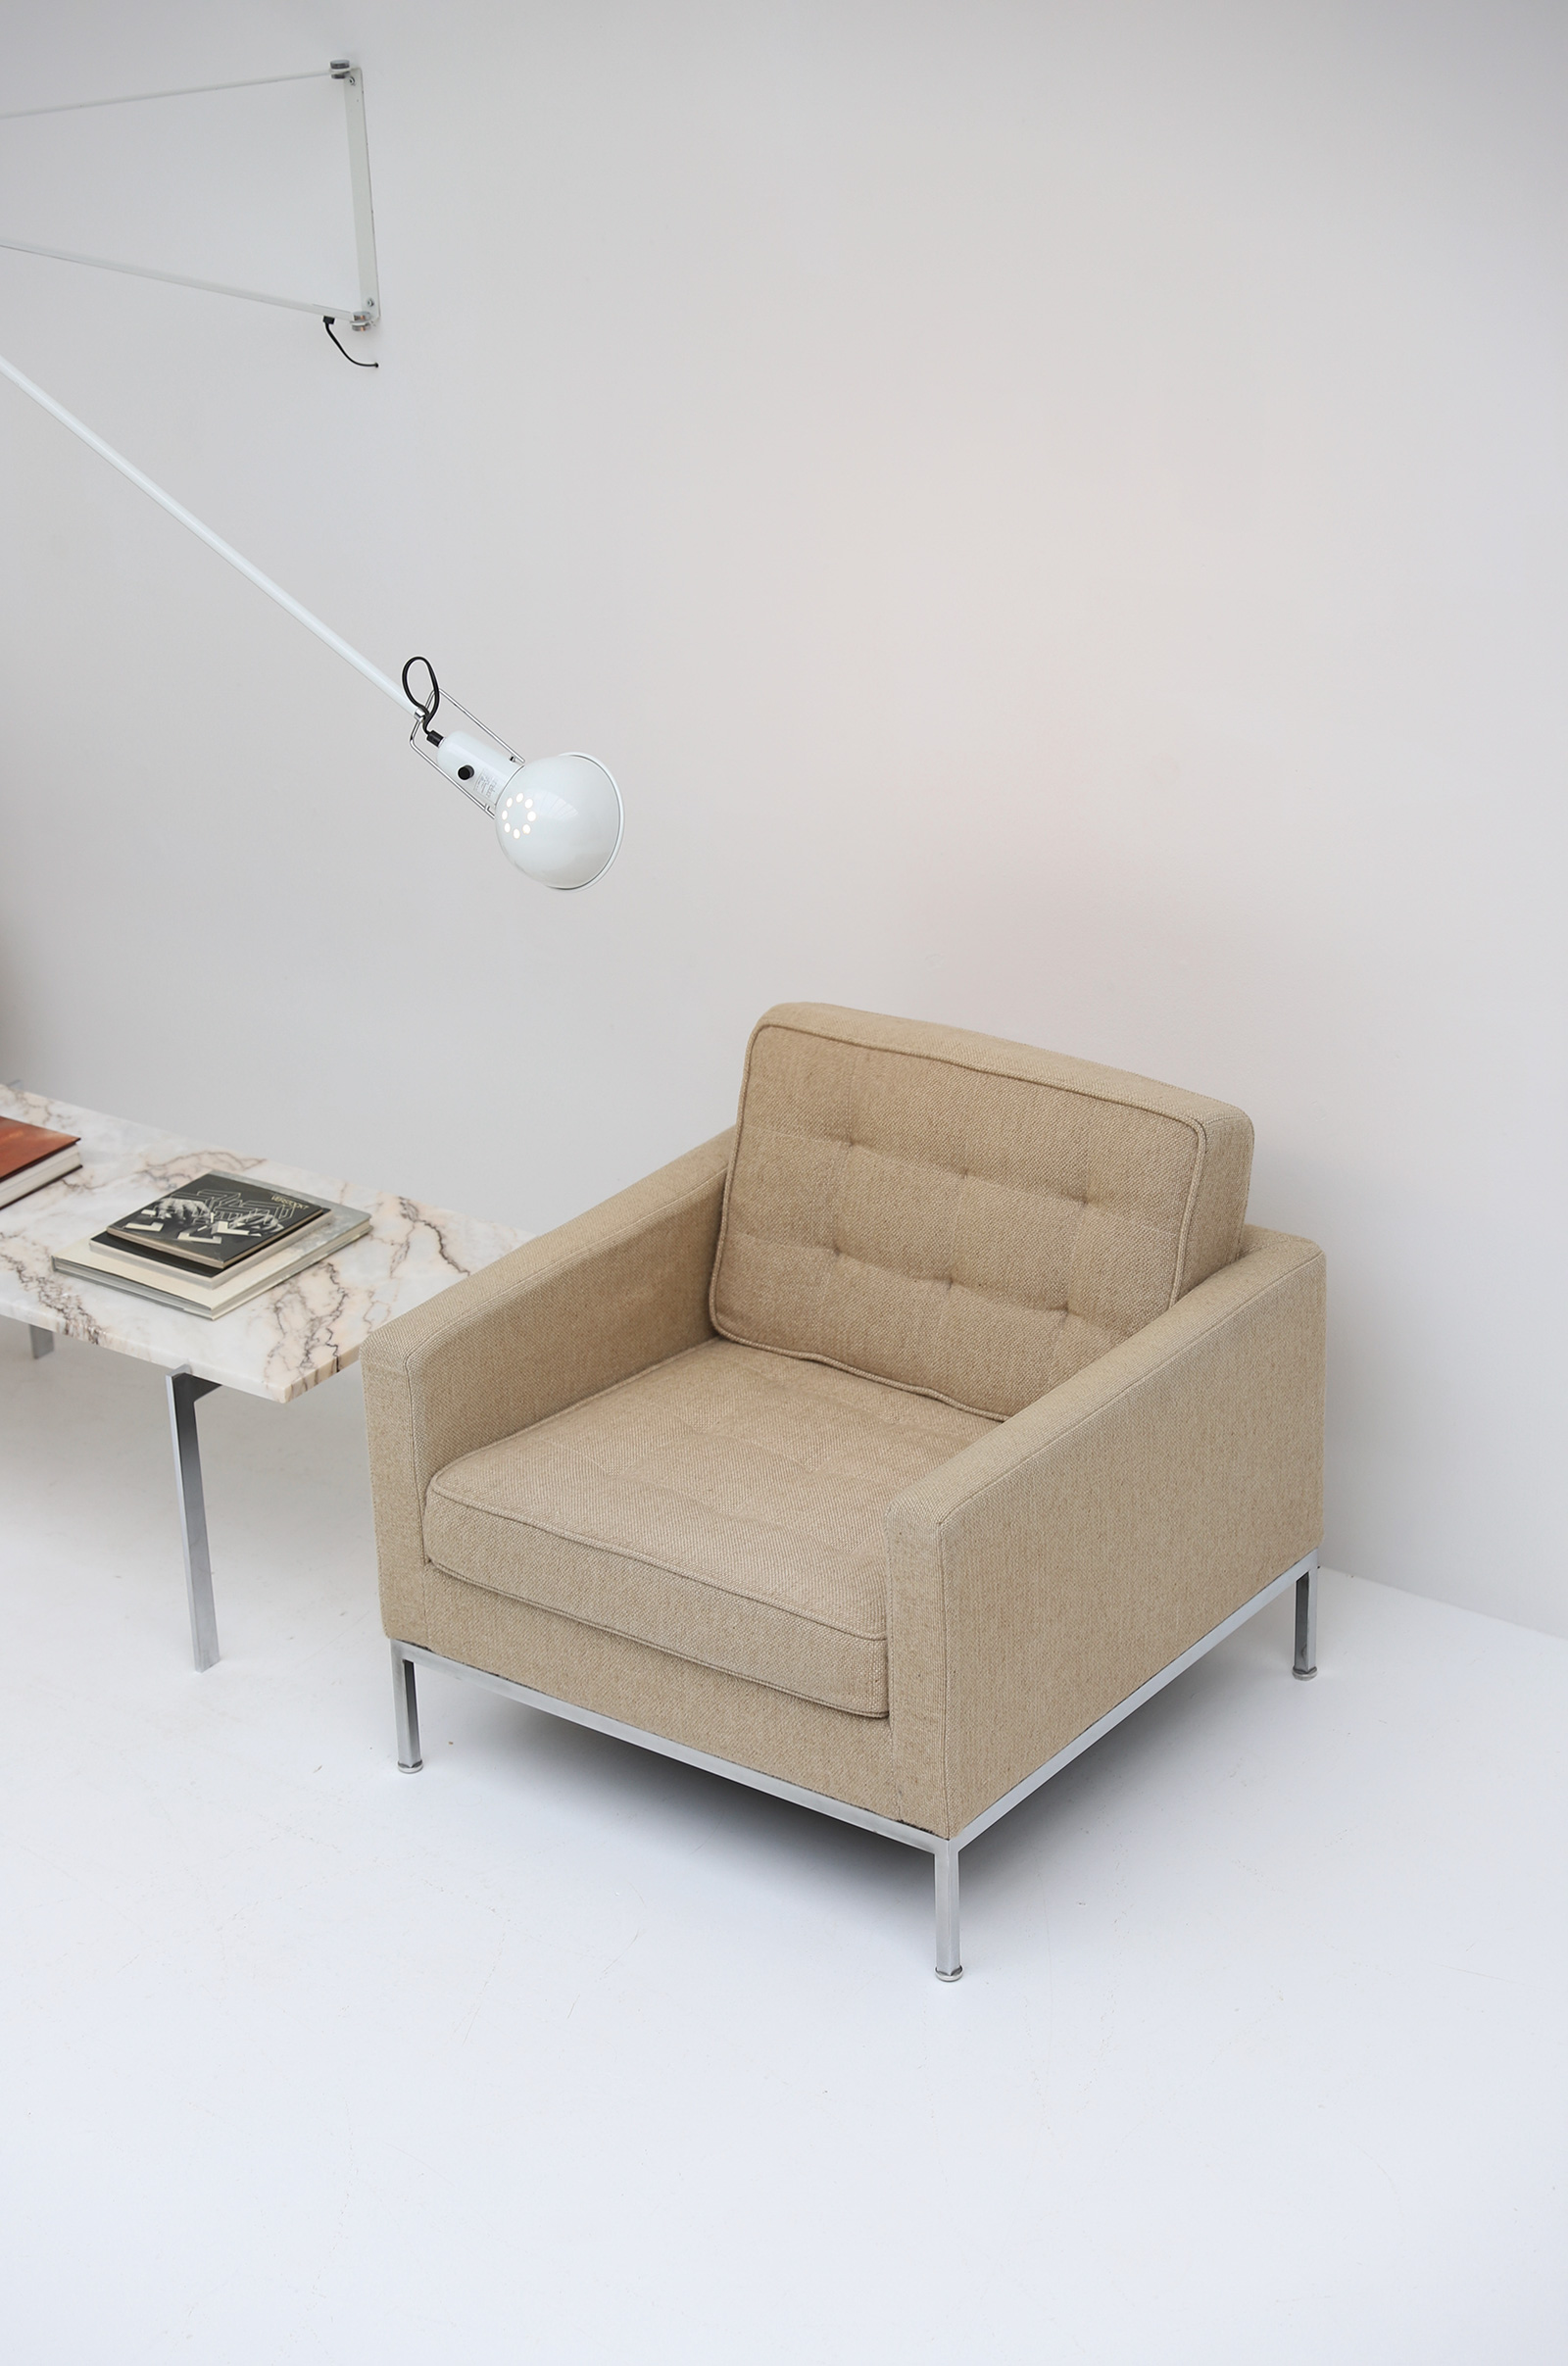 Florence Knoll Arm Chairsimage 6